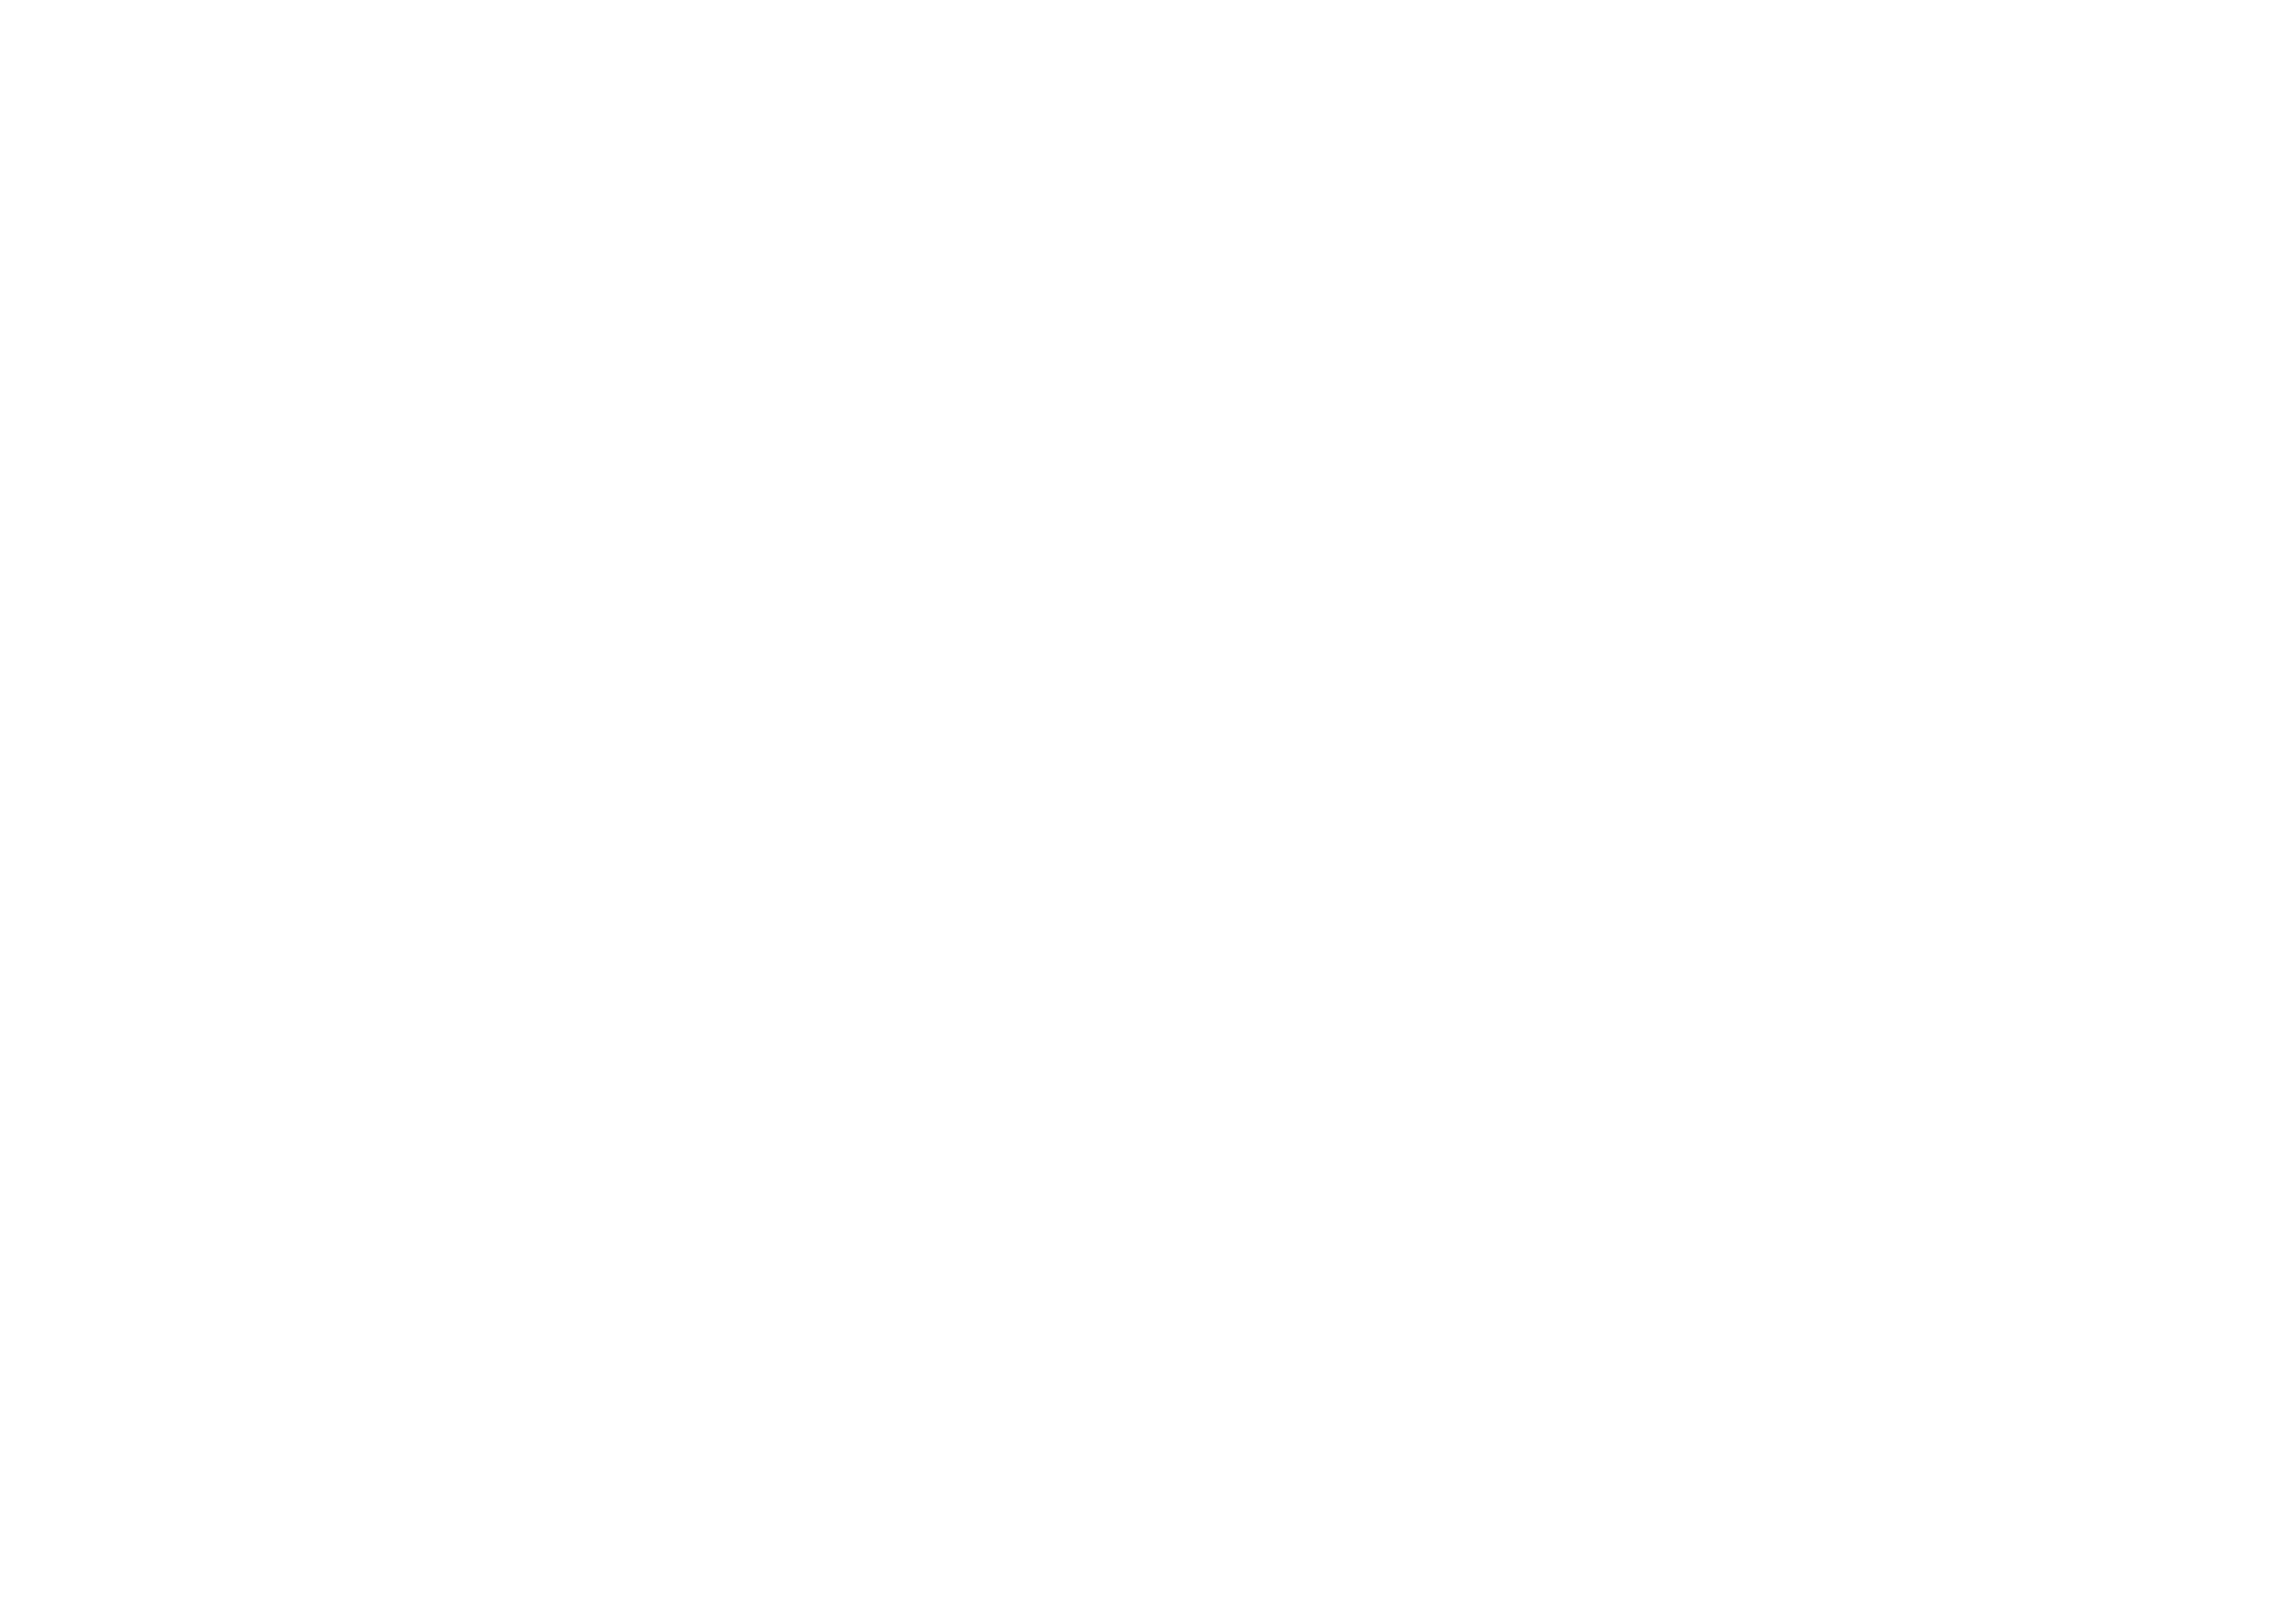 All about Ajax